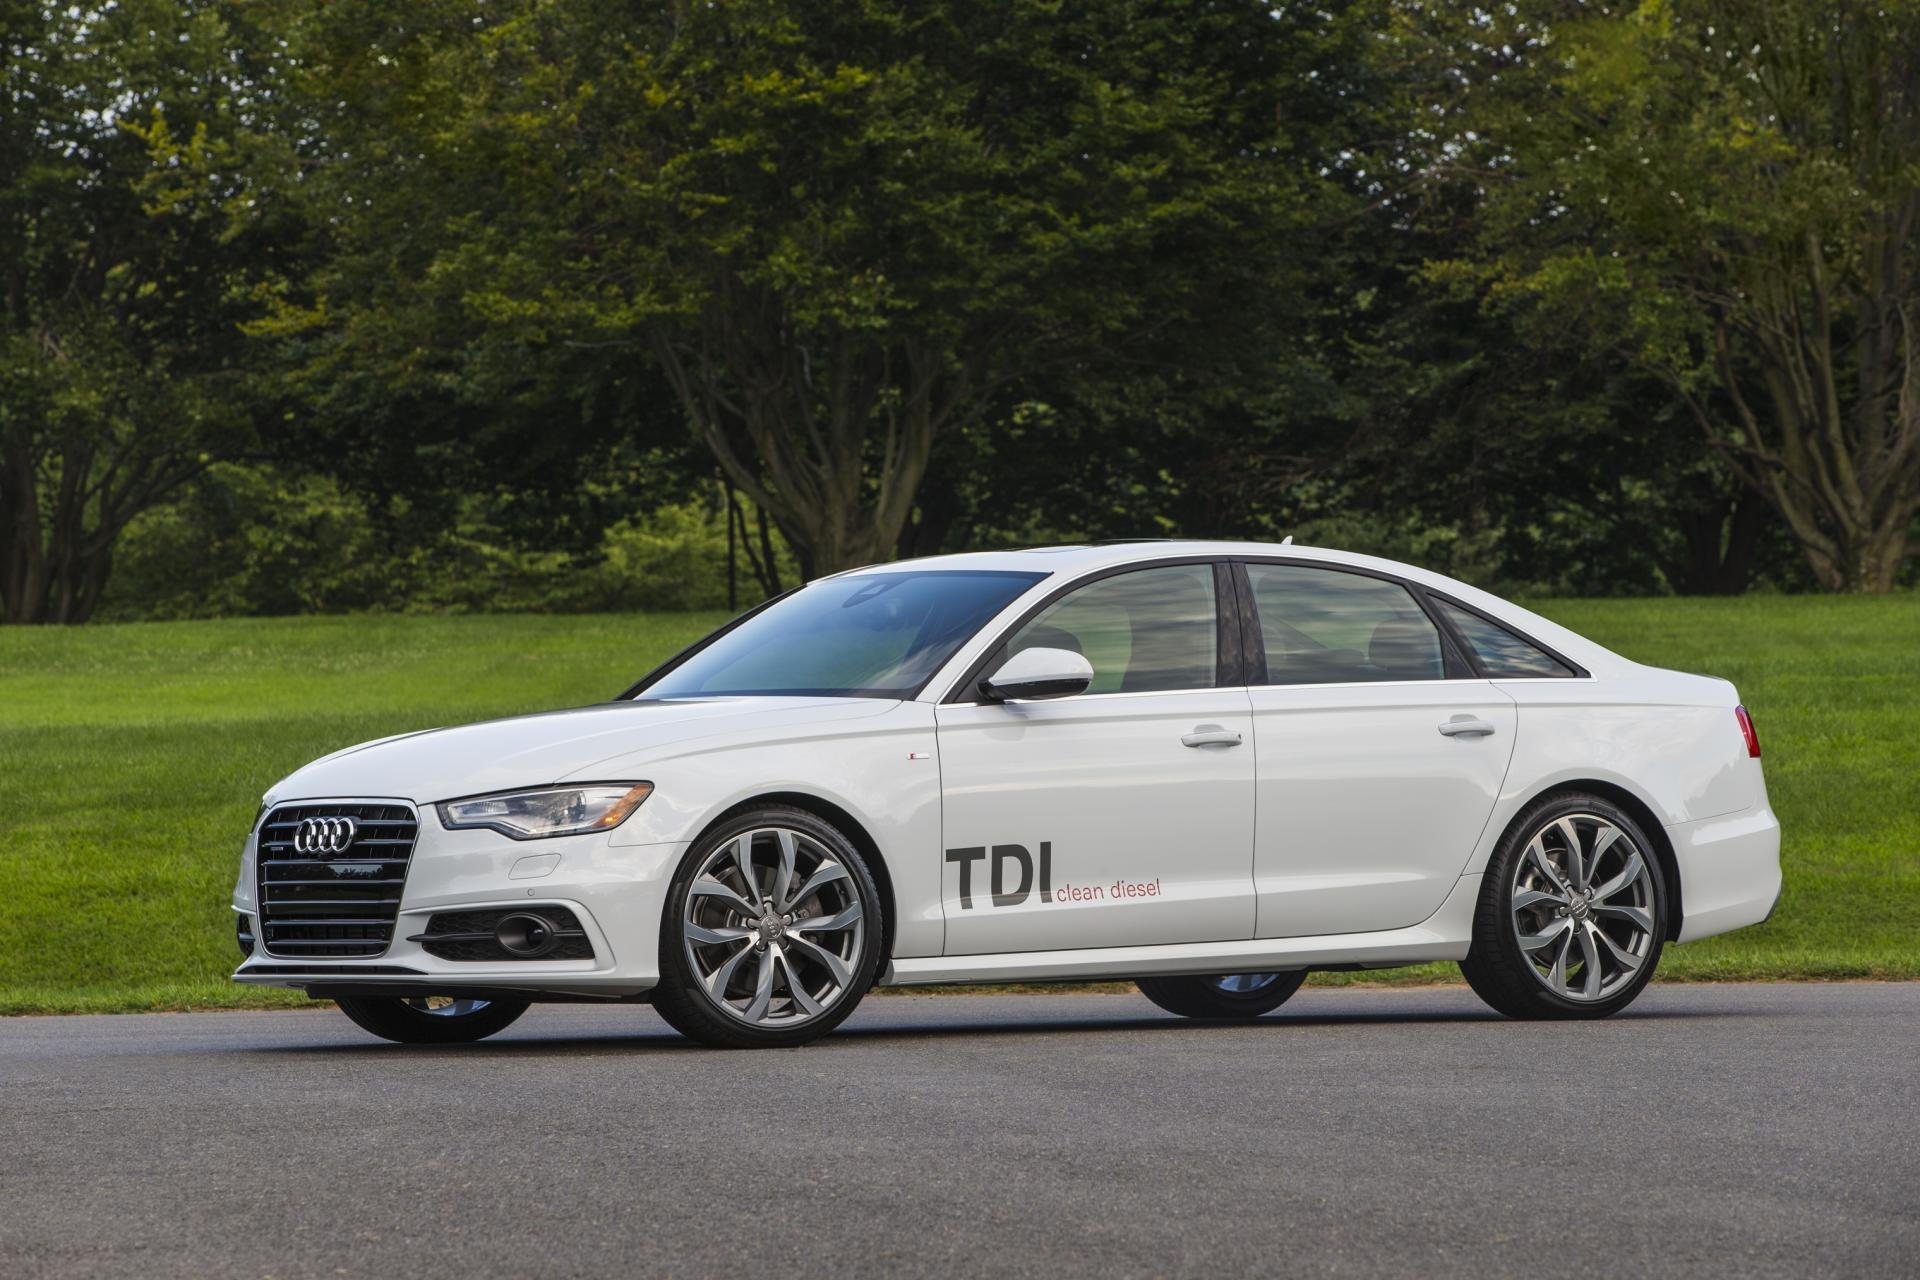 quattro carroll integrity in inventory cars sale plus westminster auto premium at used audi for county md details group